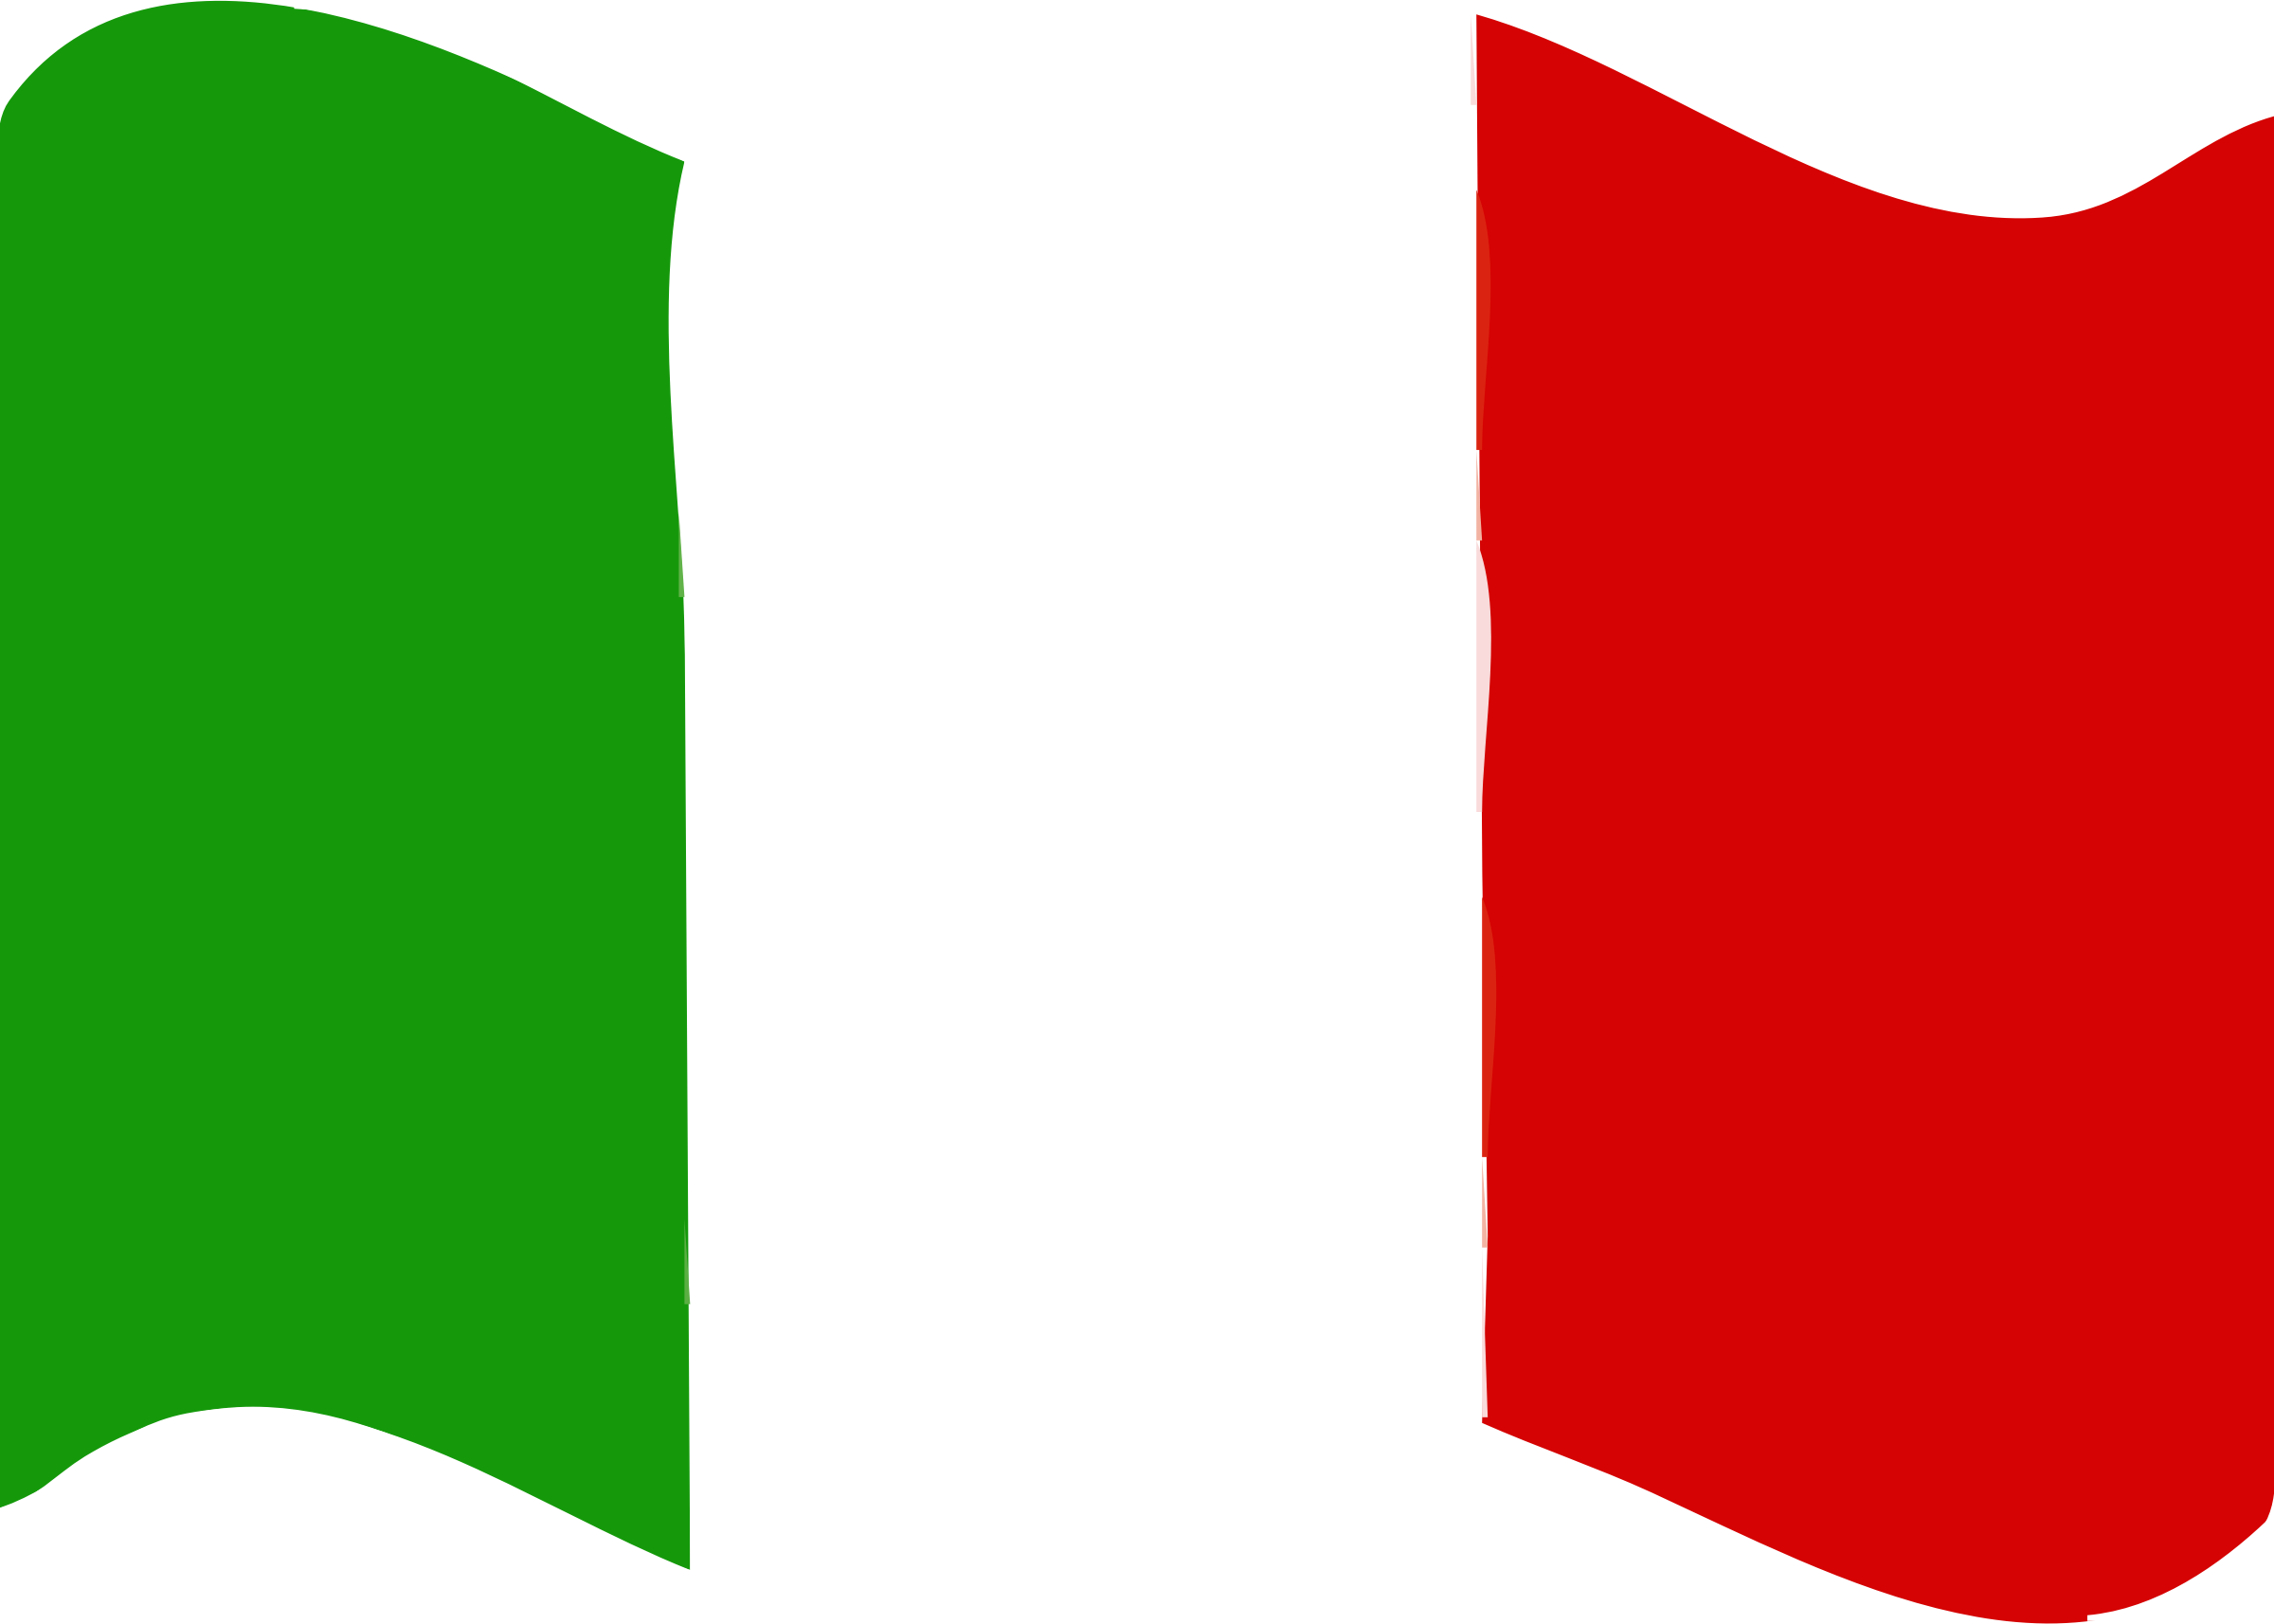 Flag of Italy wave by Joesph